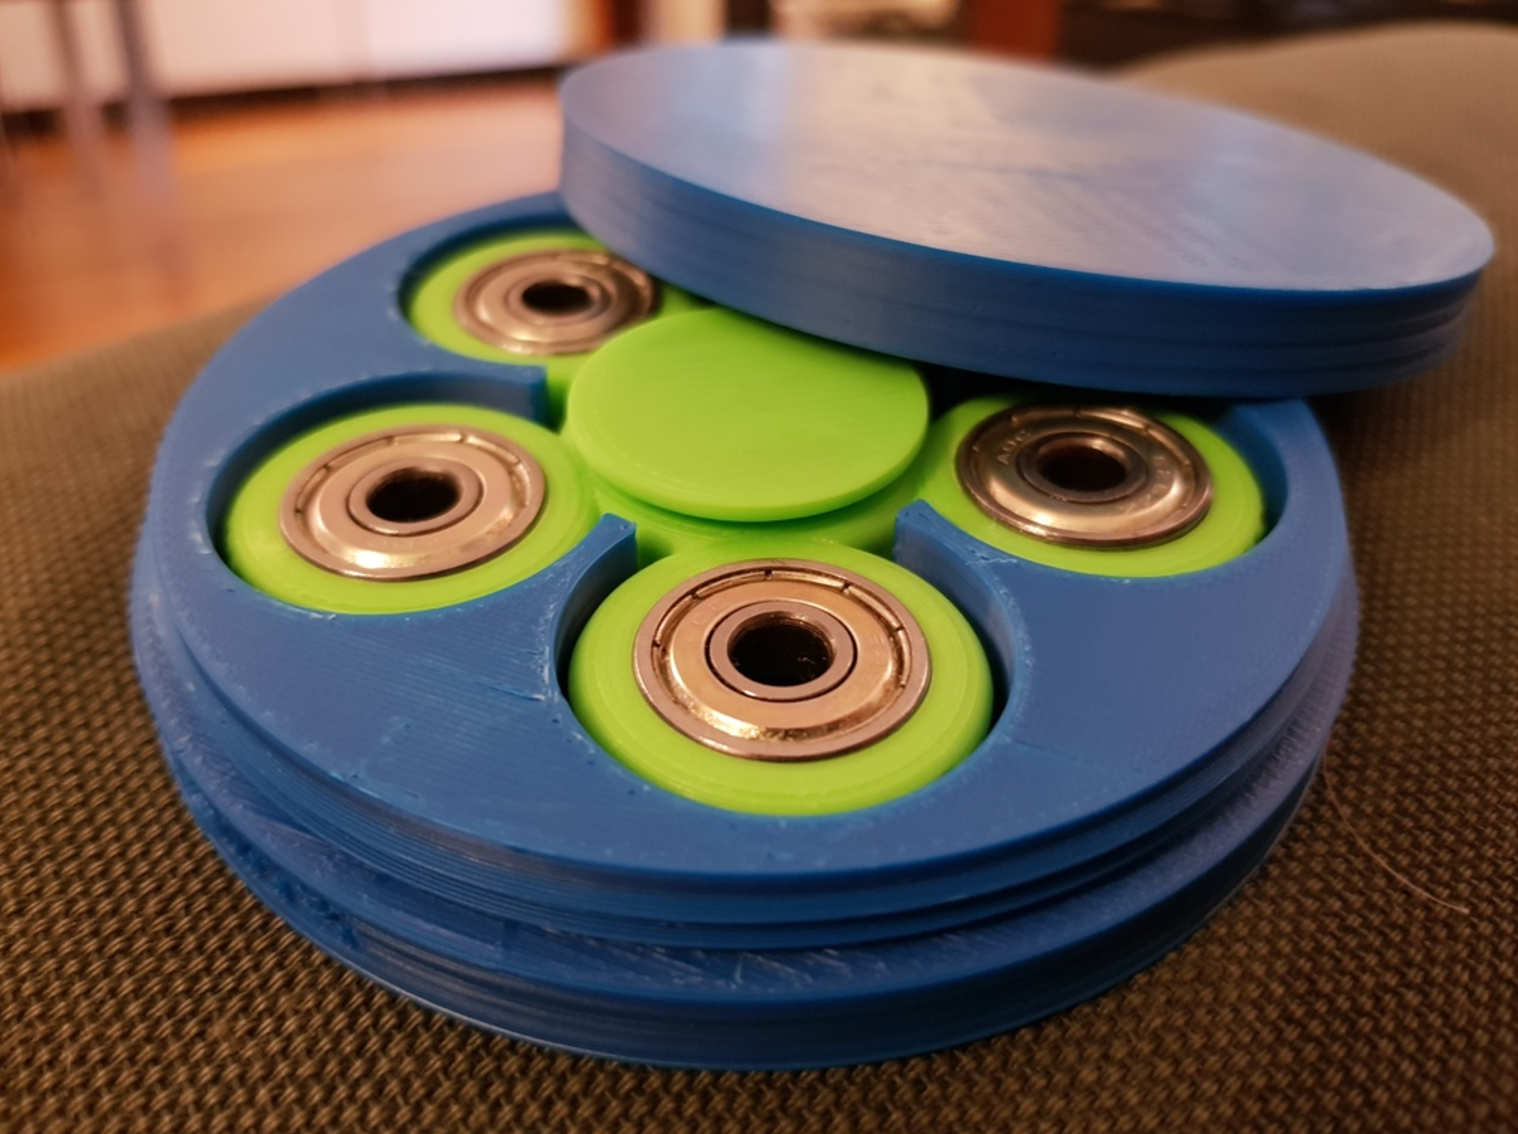 Capture d'écran 2017-06-01 à 10.07.57.png Download free STL file Customizable fidget spinner with text and perfect storage box • 3D printer template, eirikso